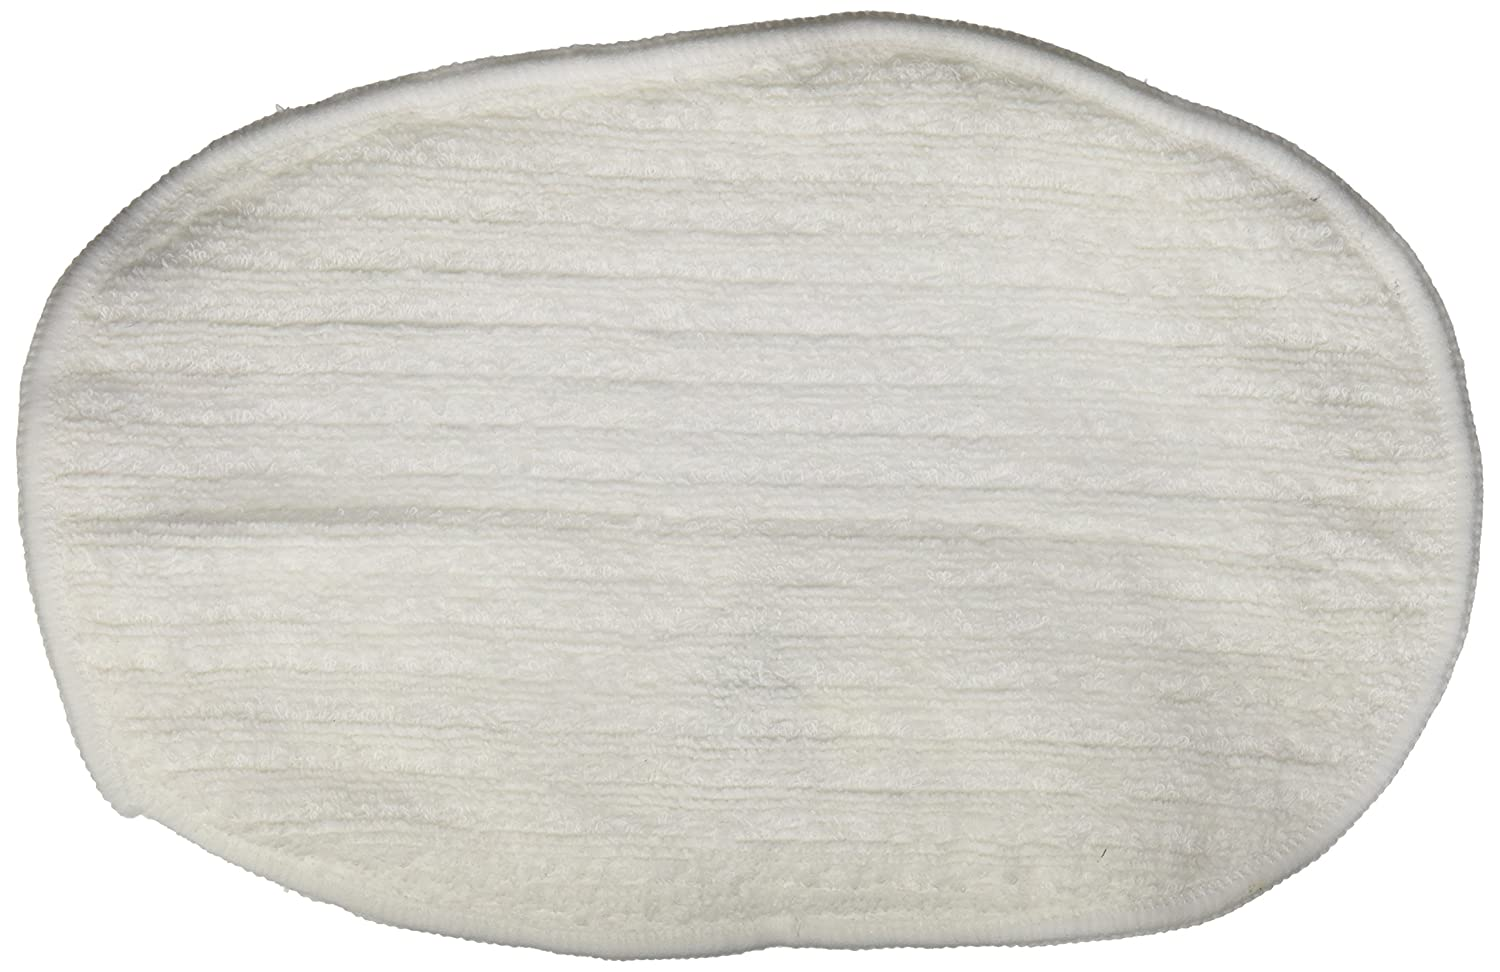 2 Bissell Washable, Reusable Steam Replacement Microfiber Mop Pads Fit Bissell Steam Mop model 1867; Compare to Bissell Steam Mop Part # 203-2158, 2032158, 3255, 32525; Designed & Engineered By Crucial Vacuum